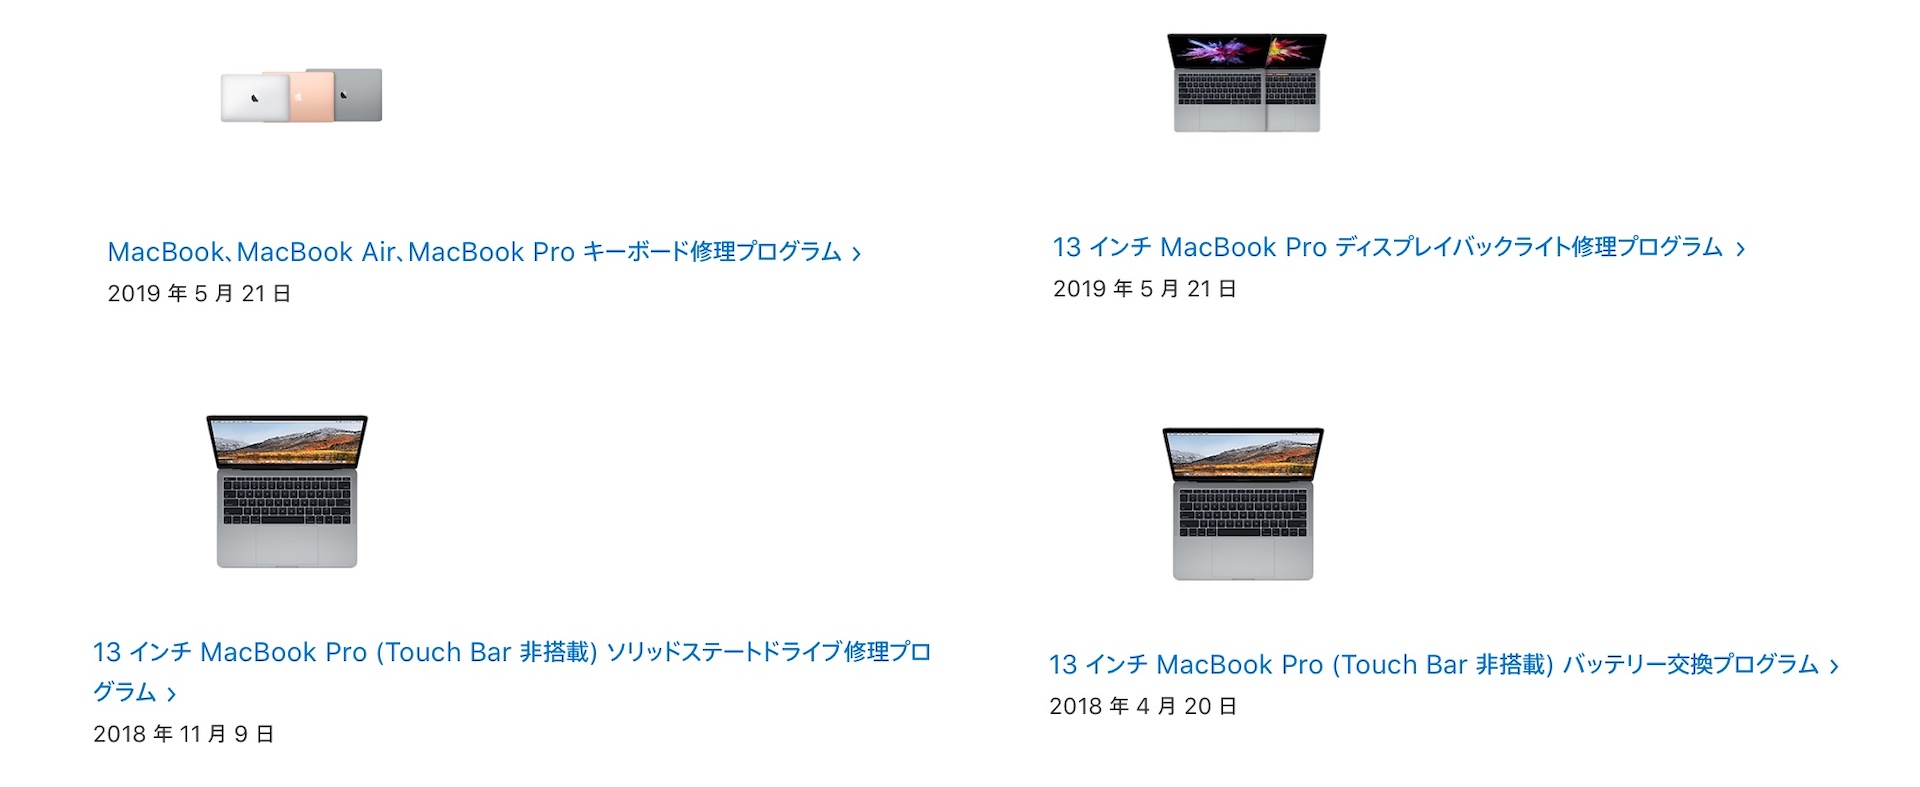 MacBook Pro Touch Bar非搭載モデル